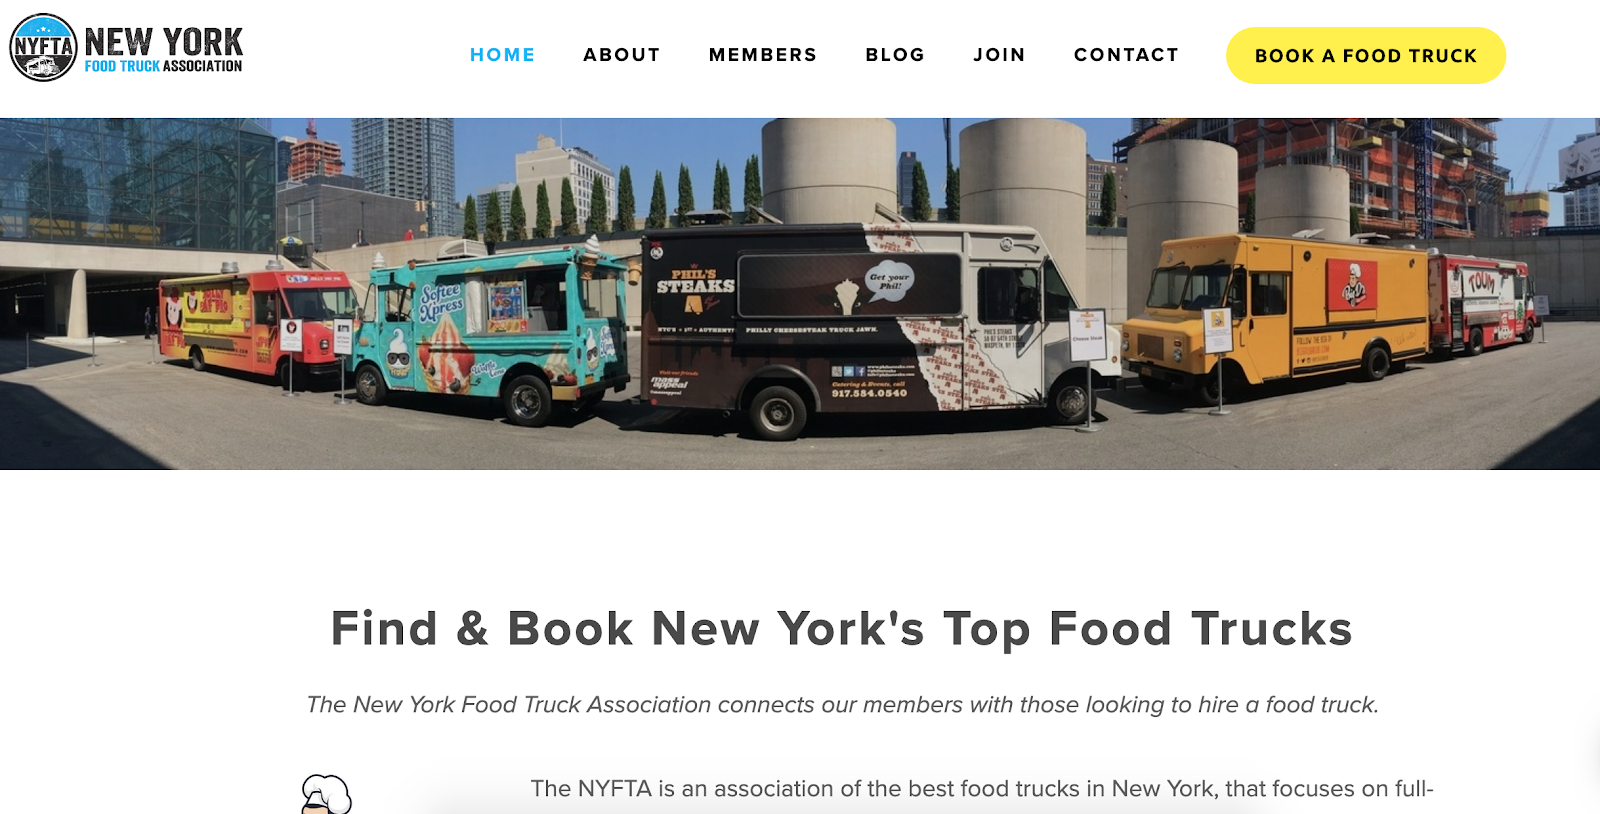 how-starting-the-new-york-food-truck-association-resulted-in-a-200k-month-business